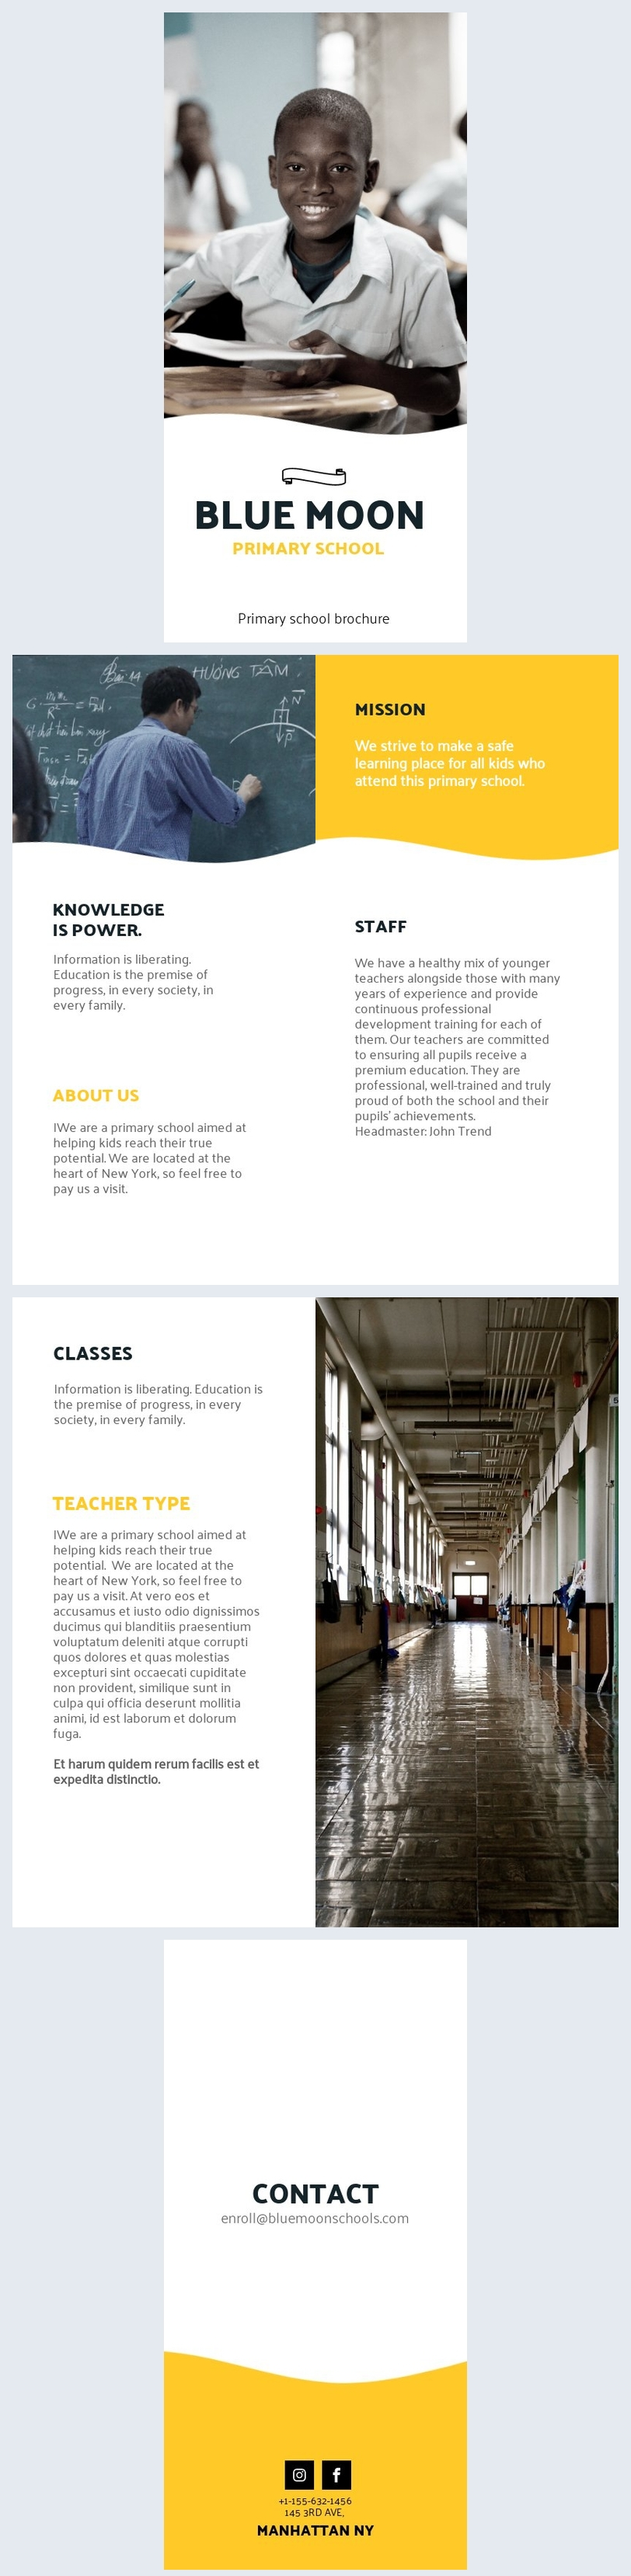 Primary School Brochure Template